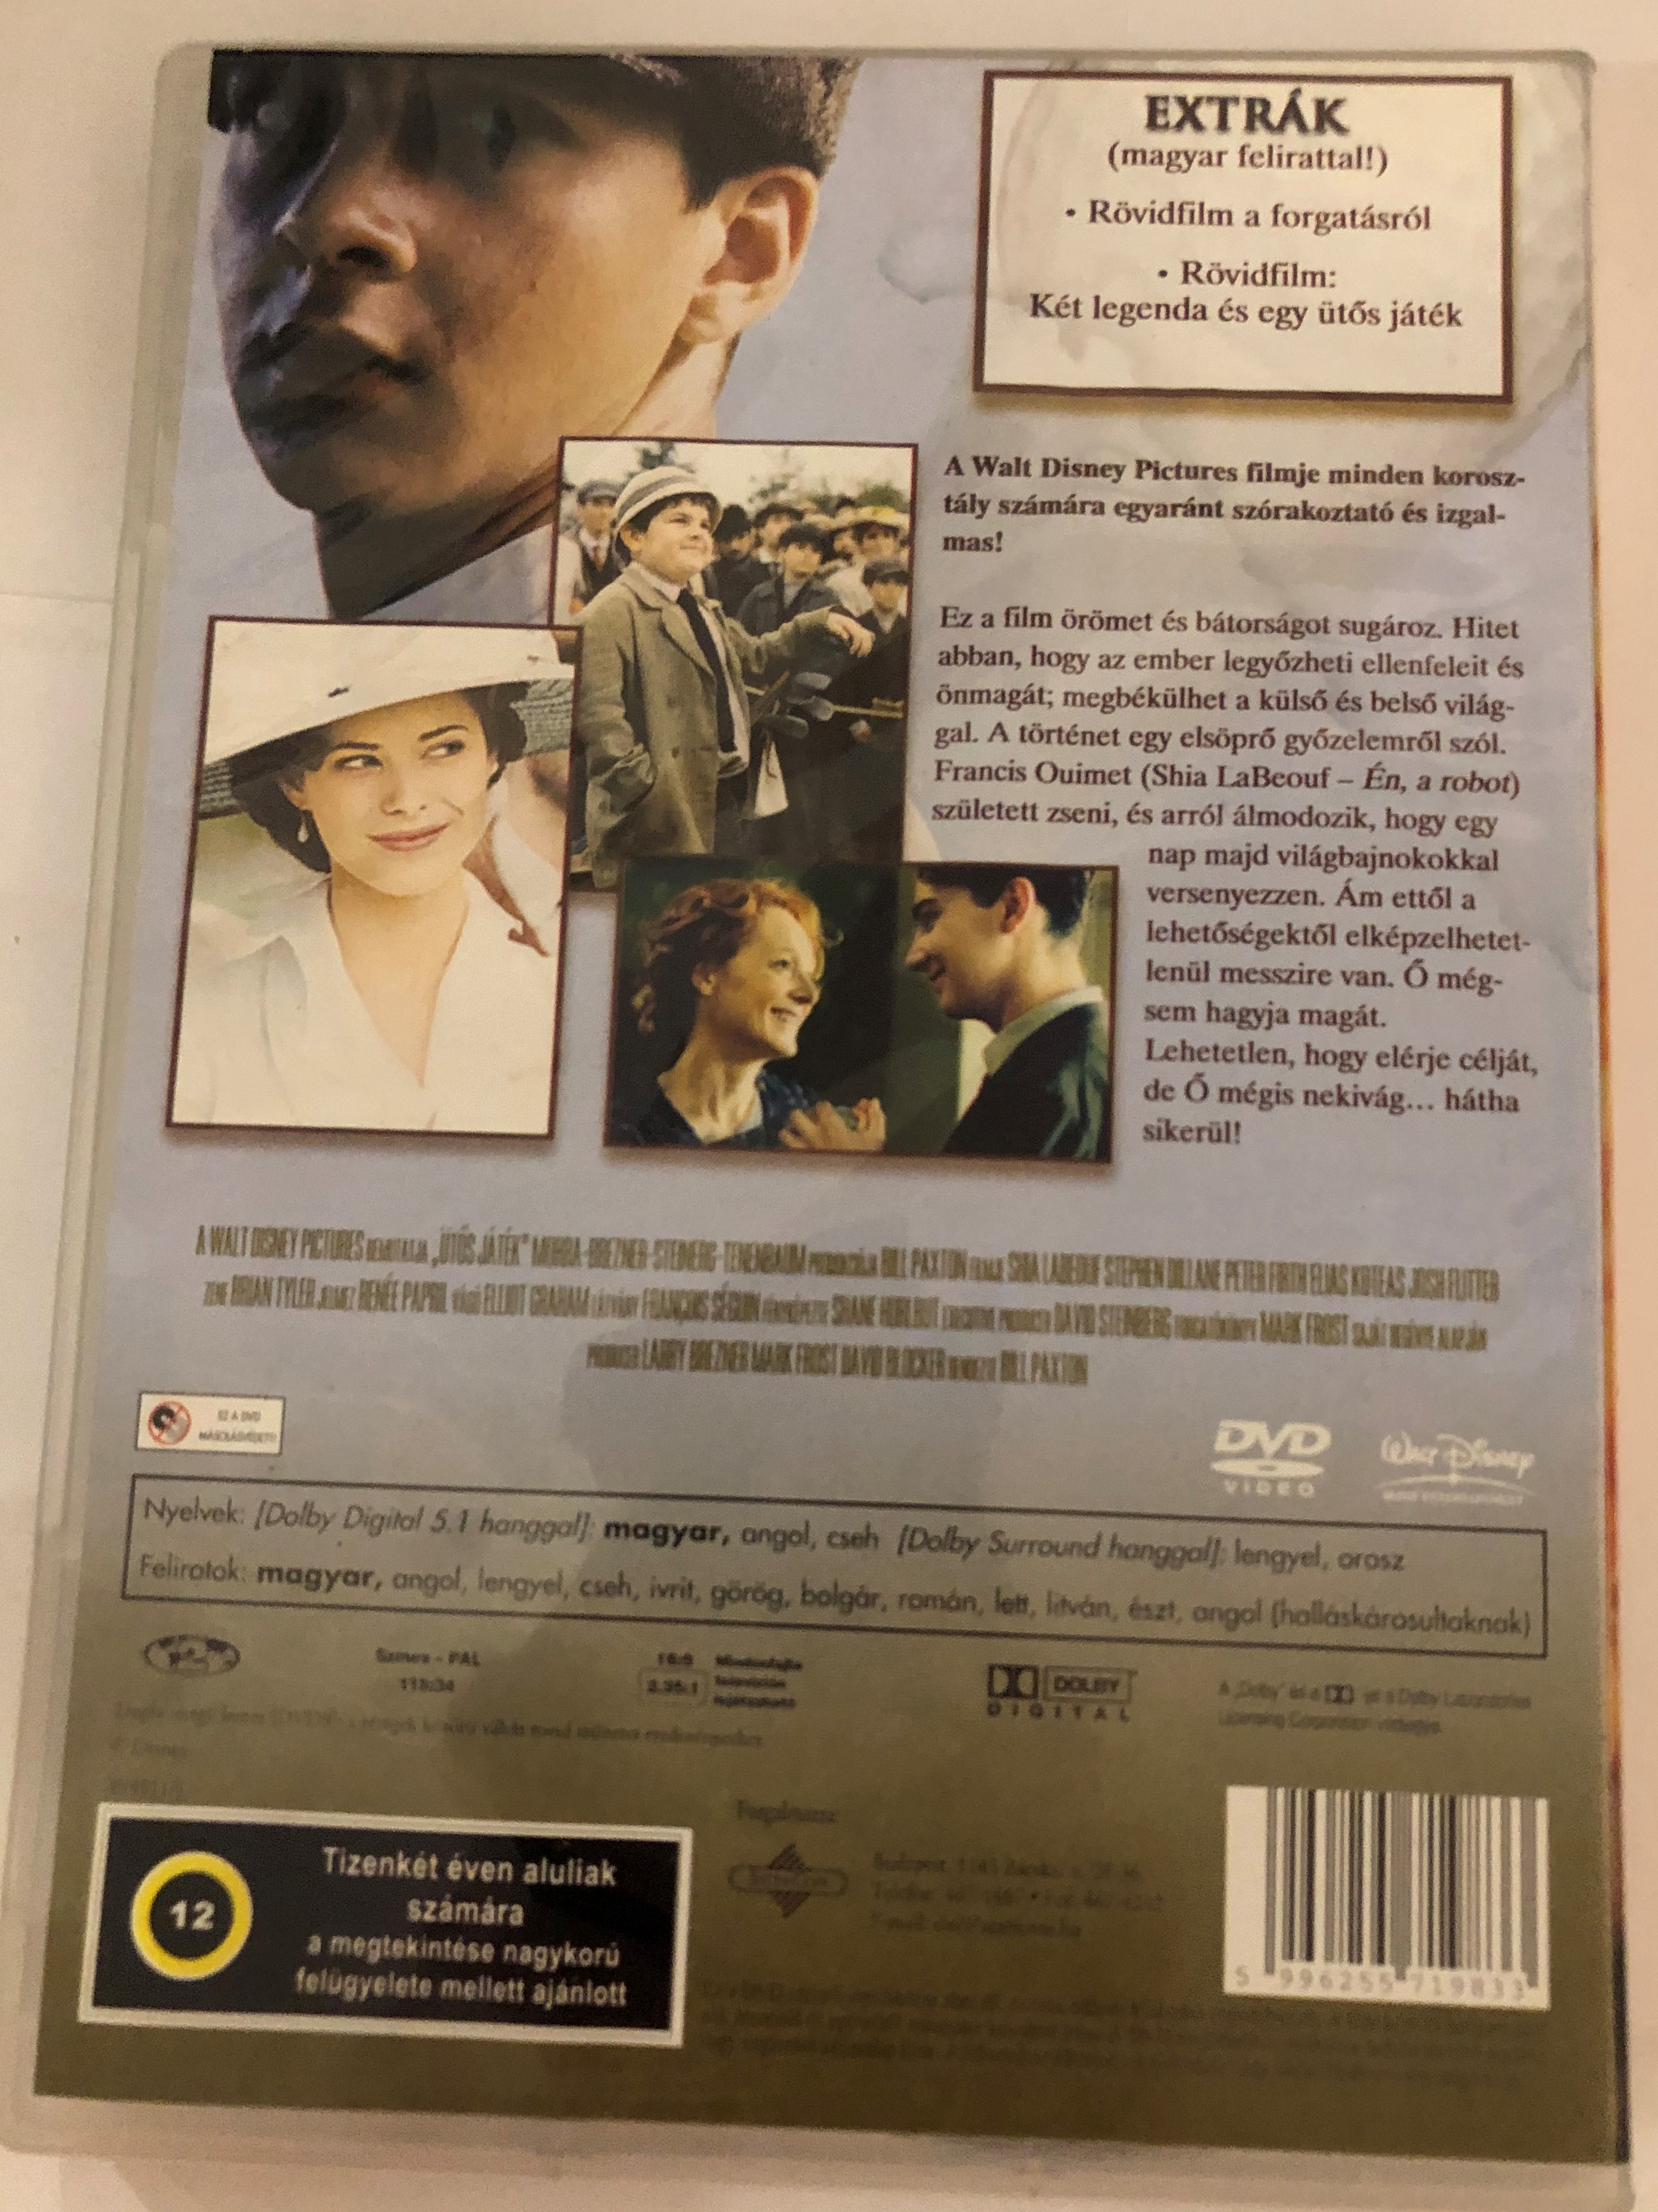 the-greatest-game-ever-played-dvd-t-s-j-t-k-directed-by-bill-paxton-2.jpg